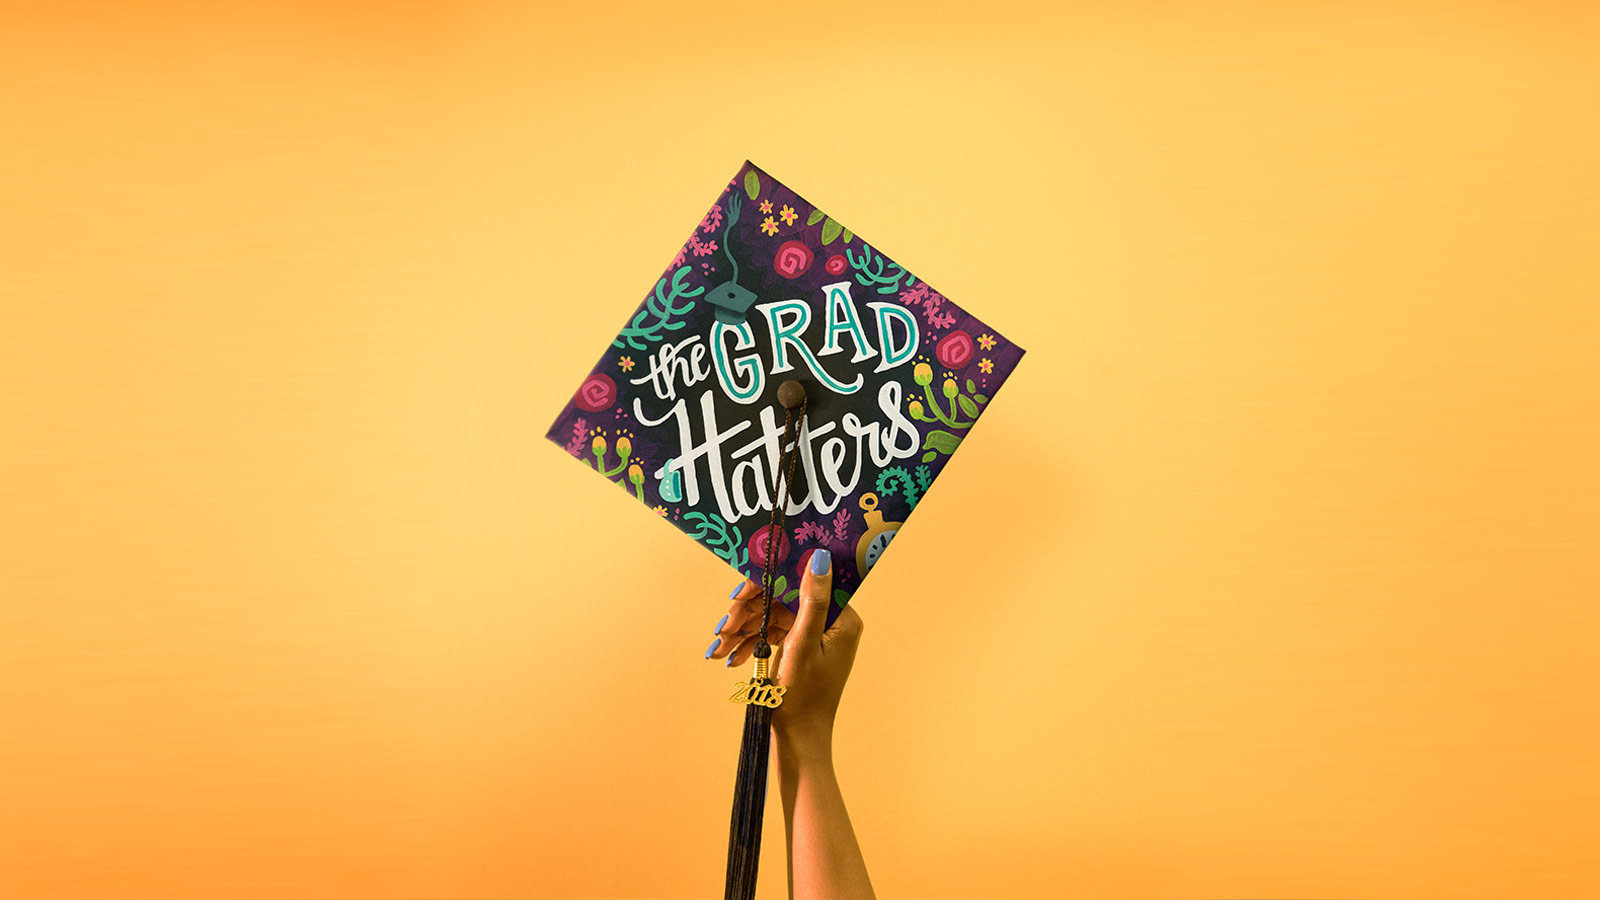 The Grad Hatters